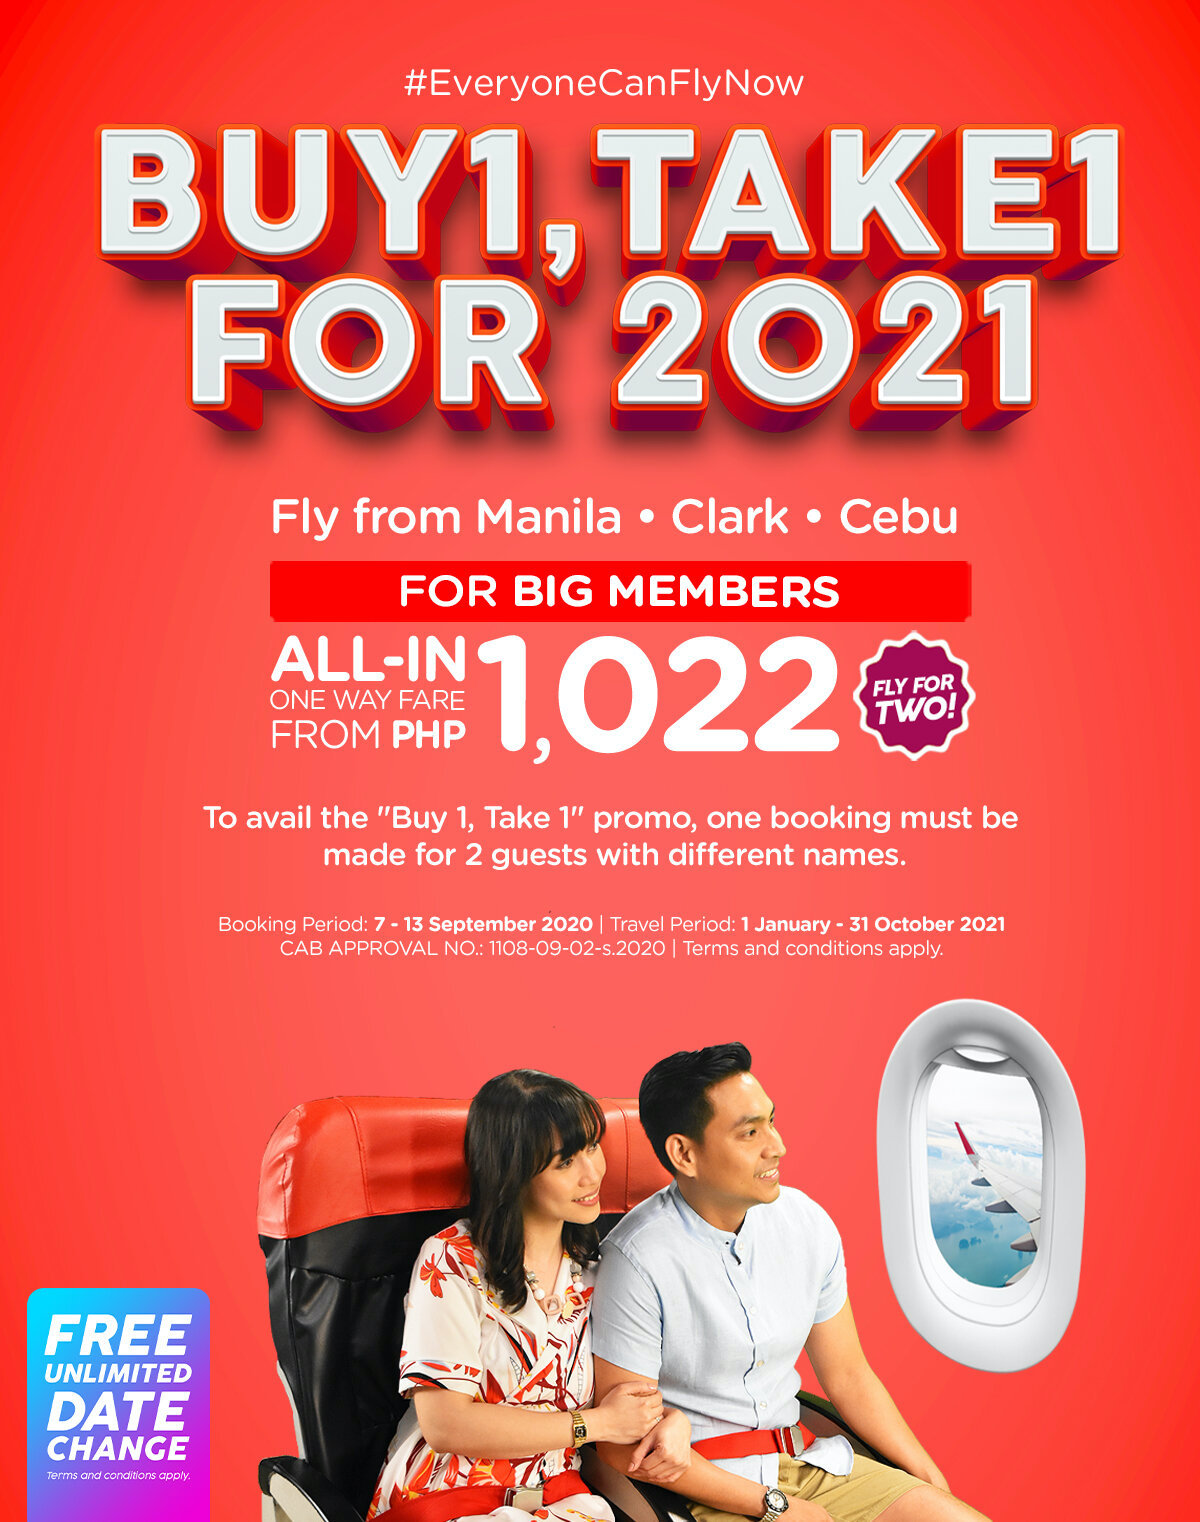 AirAsia offers Buy 1 Take 1 for 2021